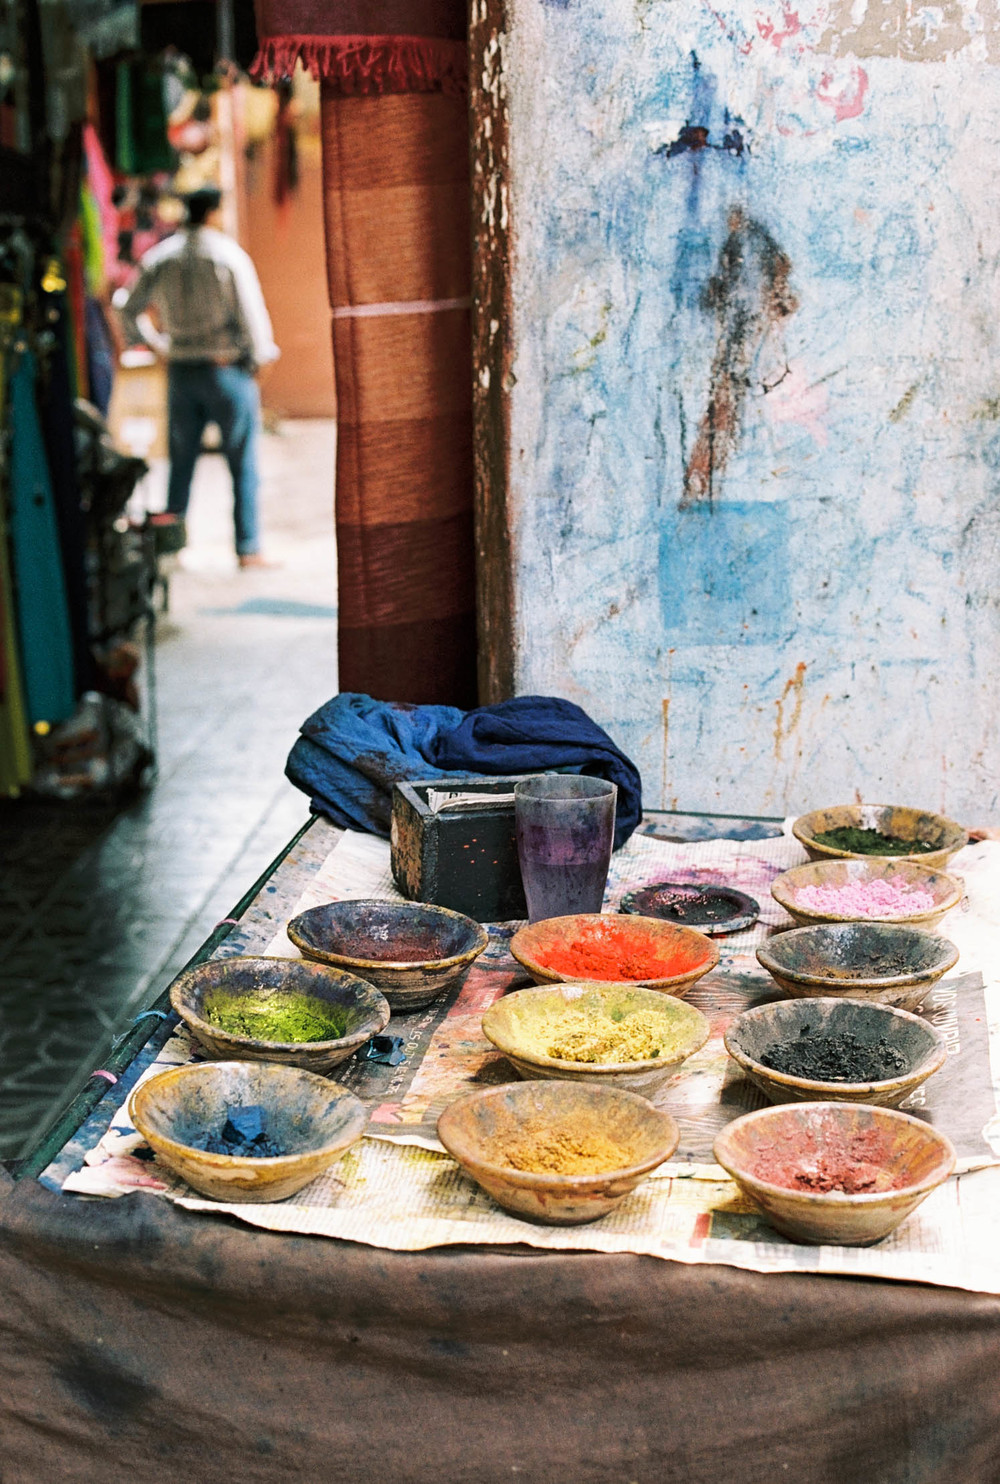 Natural dyes made from local materials are used to dye fabrics.